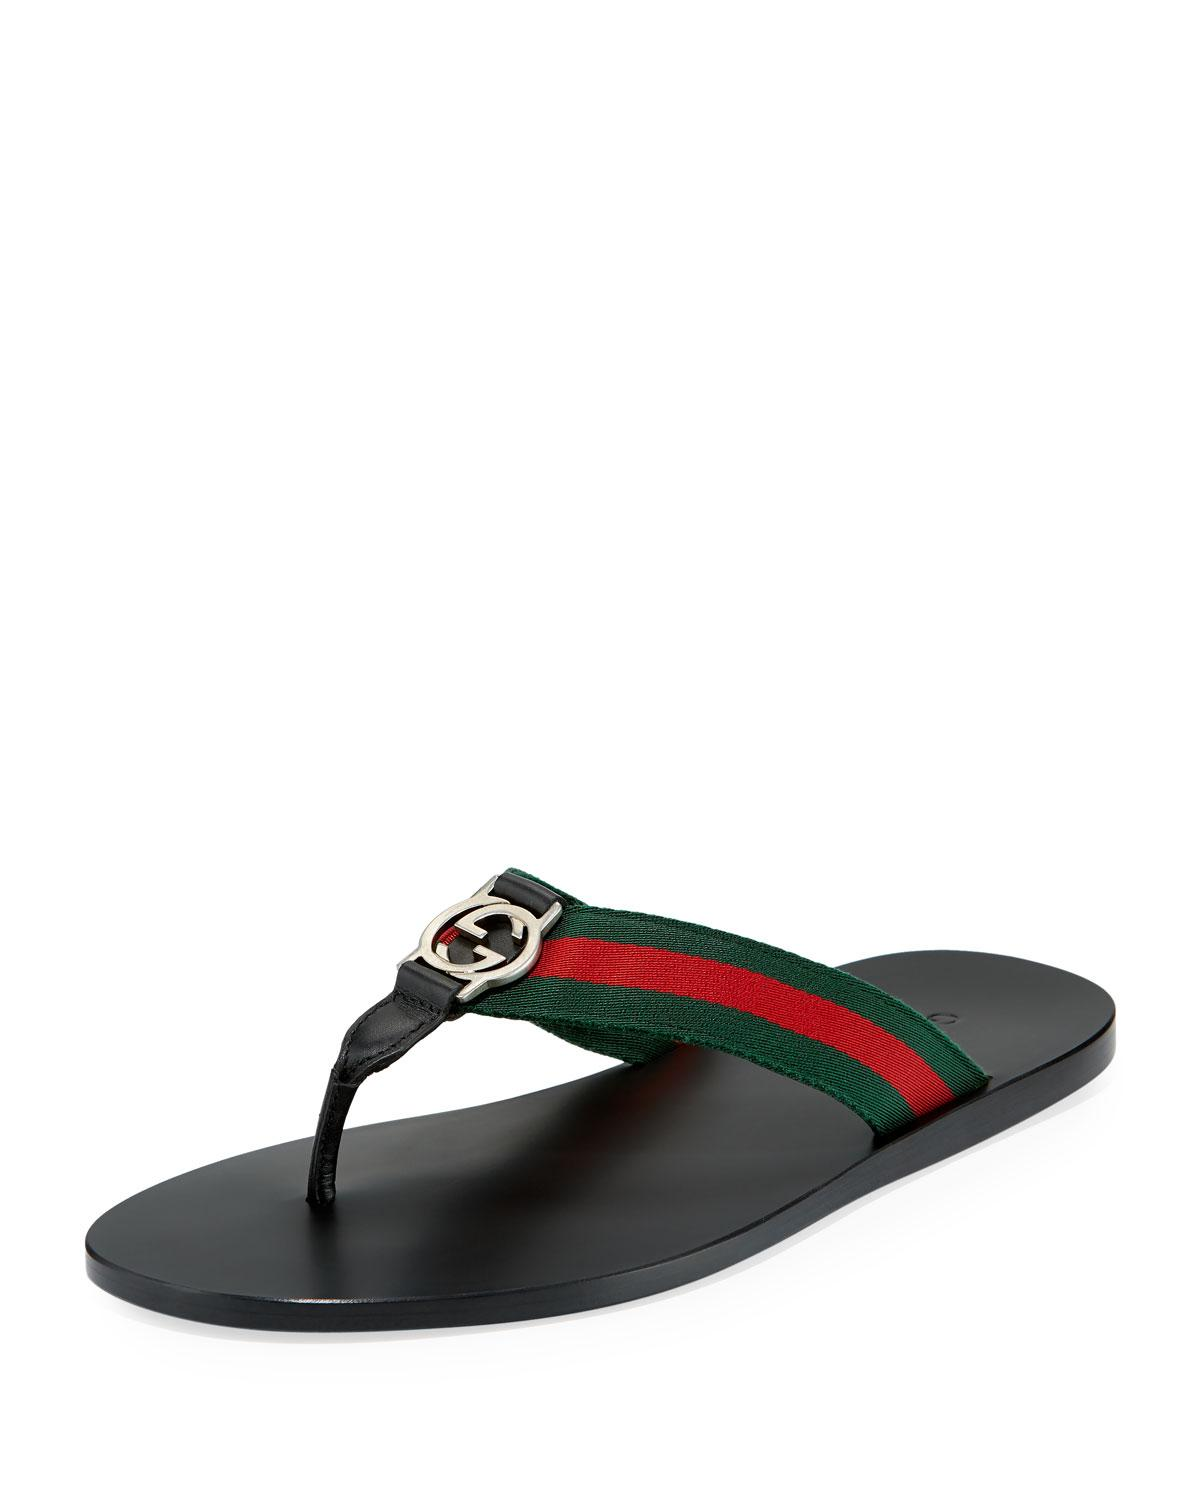 23ff1970713dd8 Lyst - Gucci GG Line Signature Web Thong Sandal in Black for Men